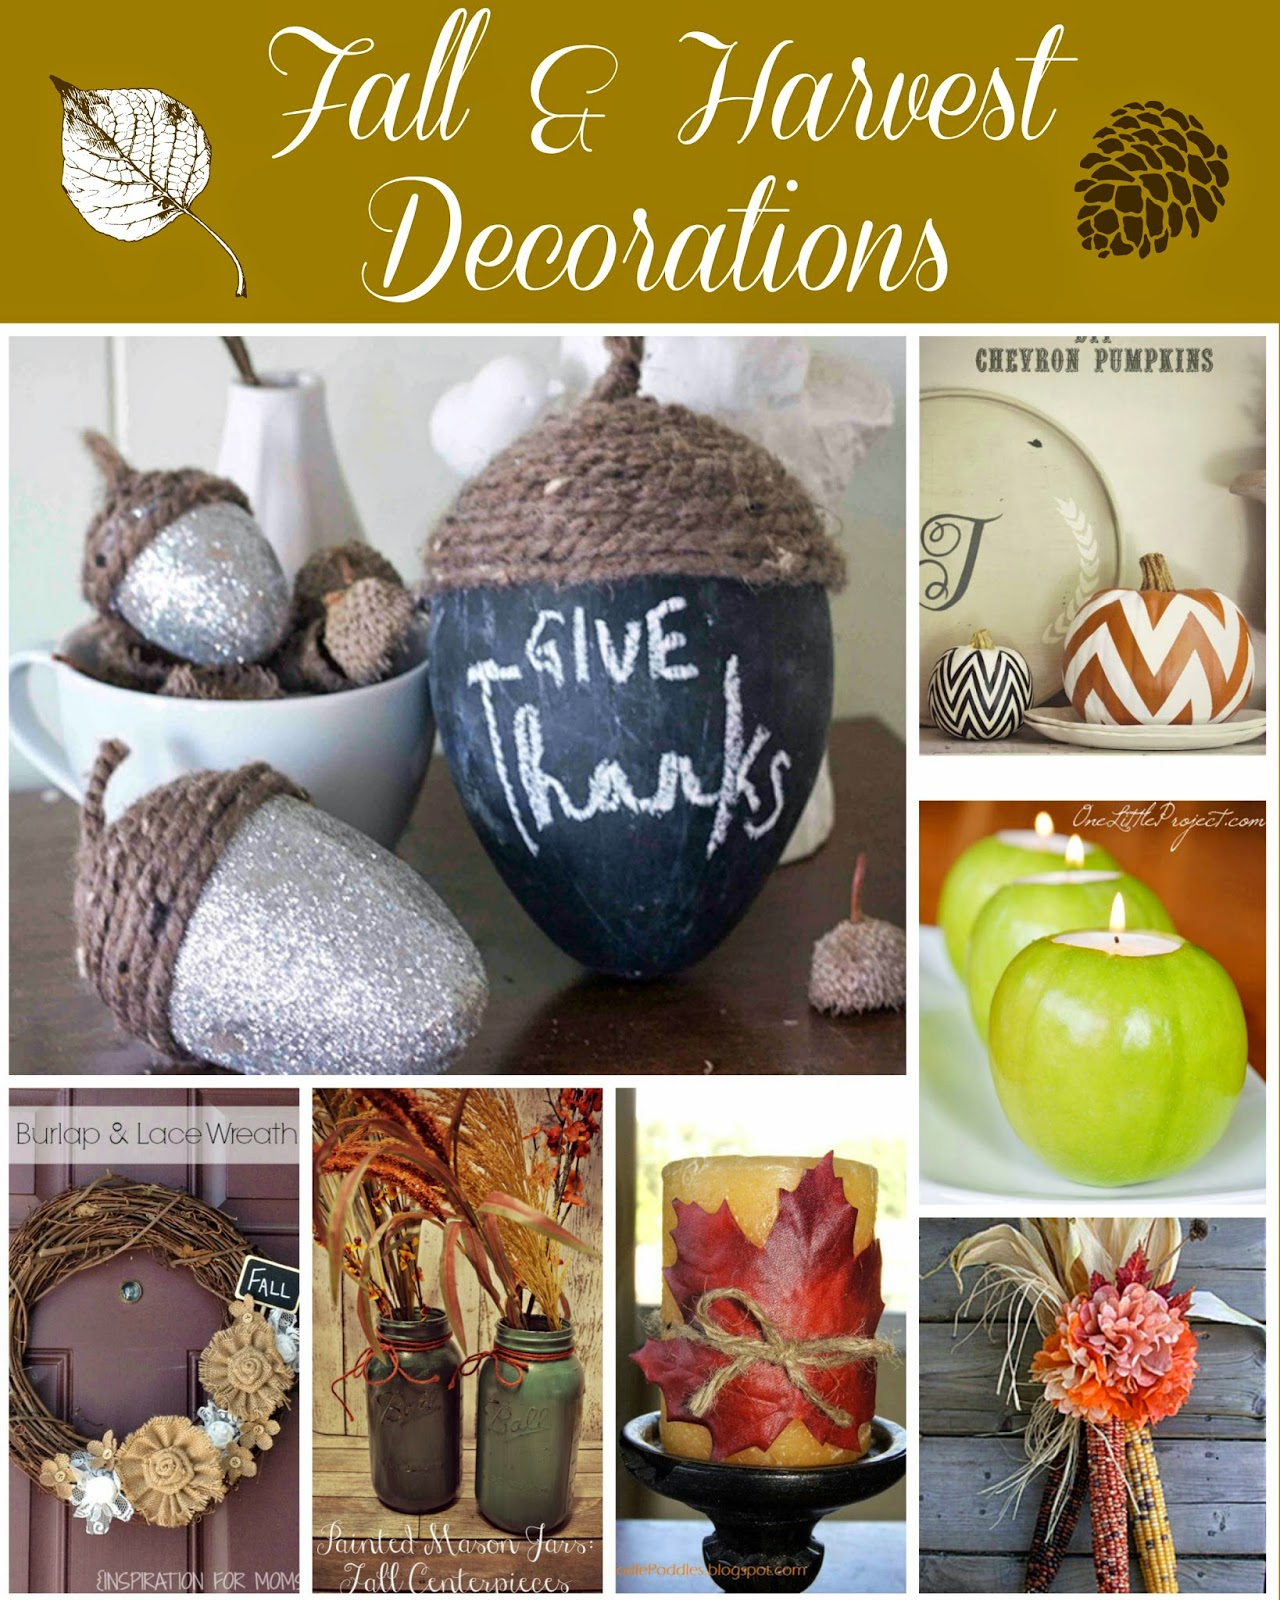 harvest home decor diy ideas easy fall decorations harvest decorations diy fall decorations - Harvest Decorations